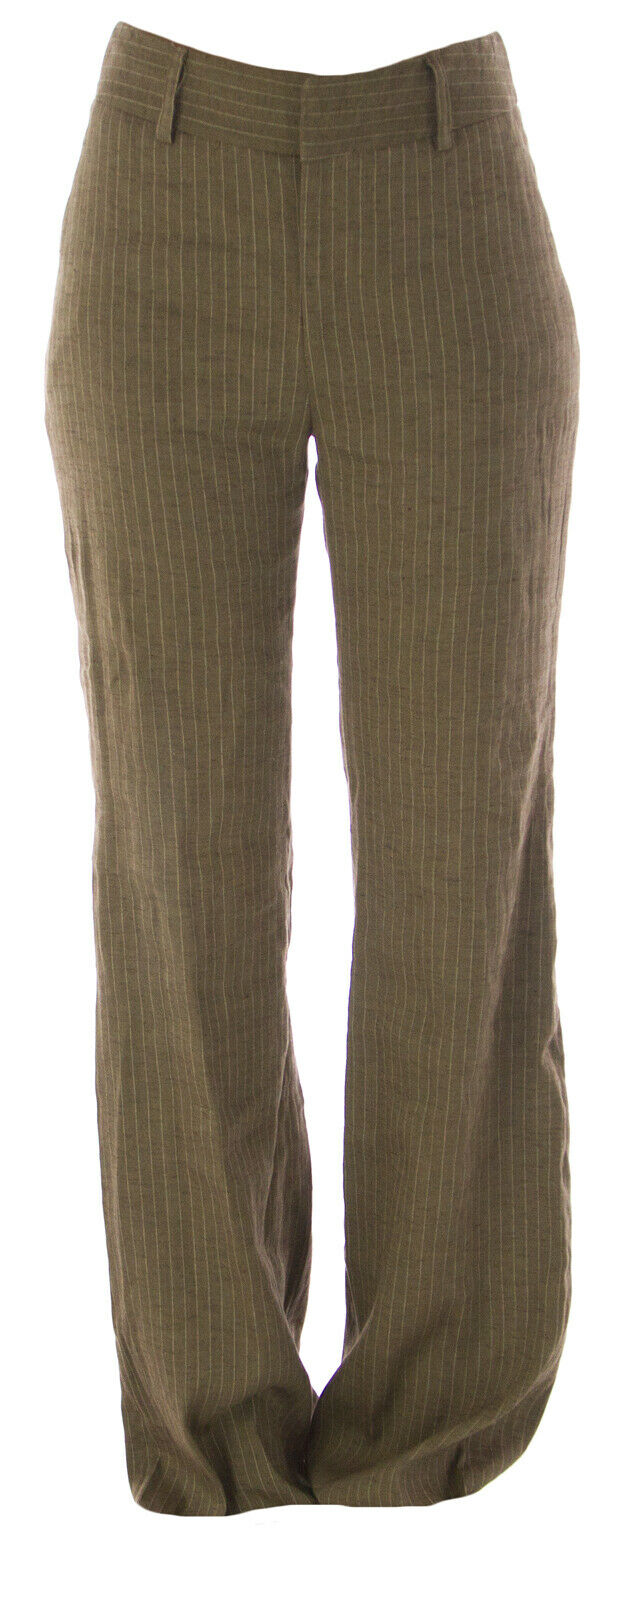 RAVEN Women's Brown Pinstriped Linen Blend Comfort Dress Pants Sz 0  NEW